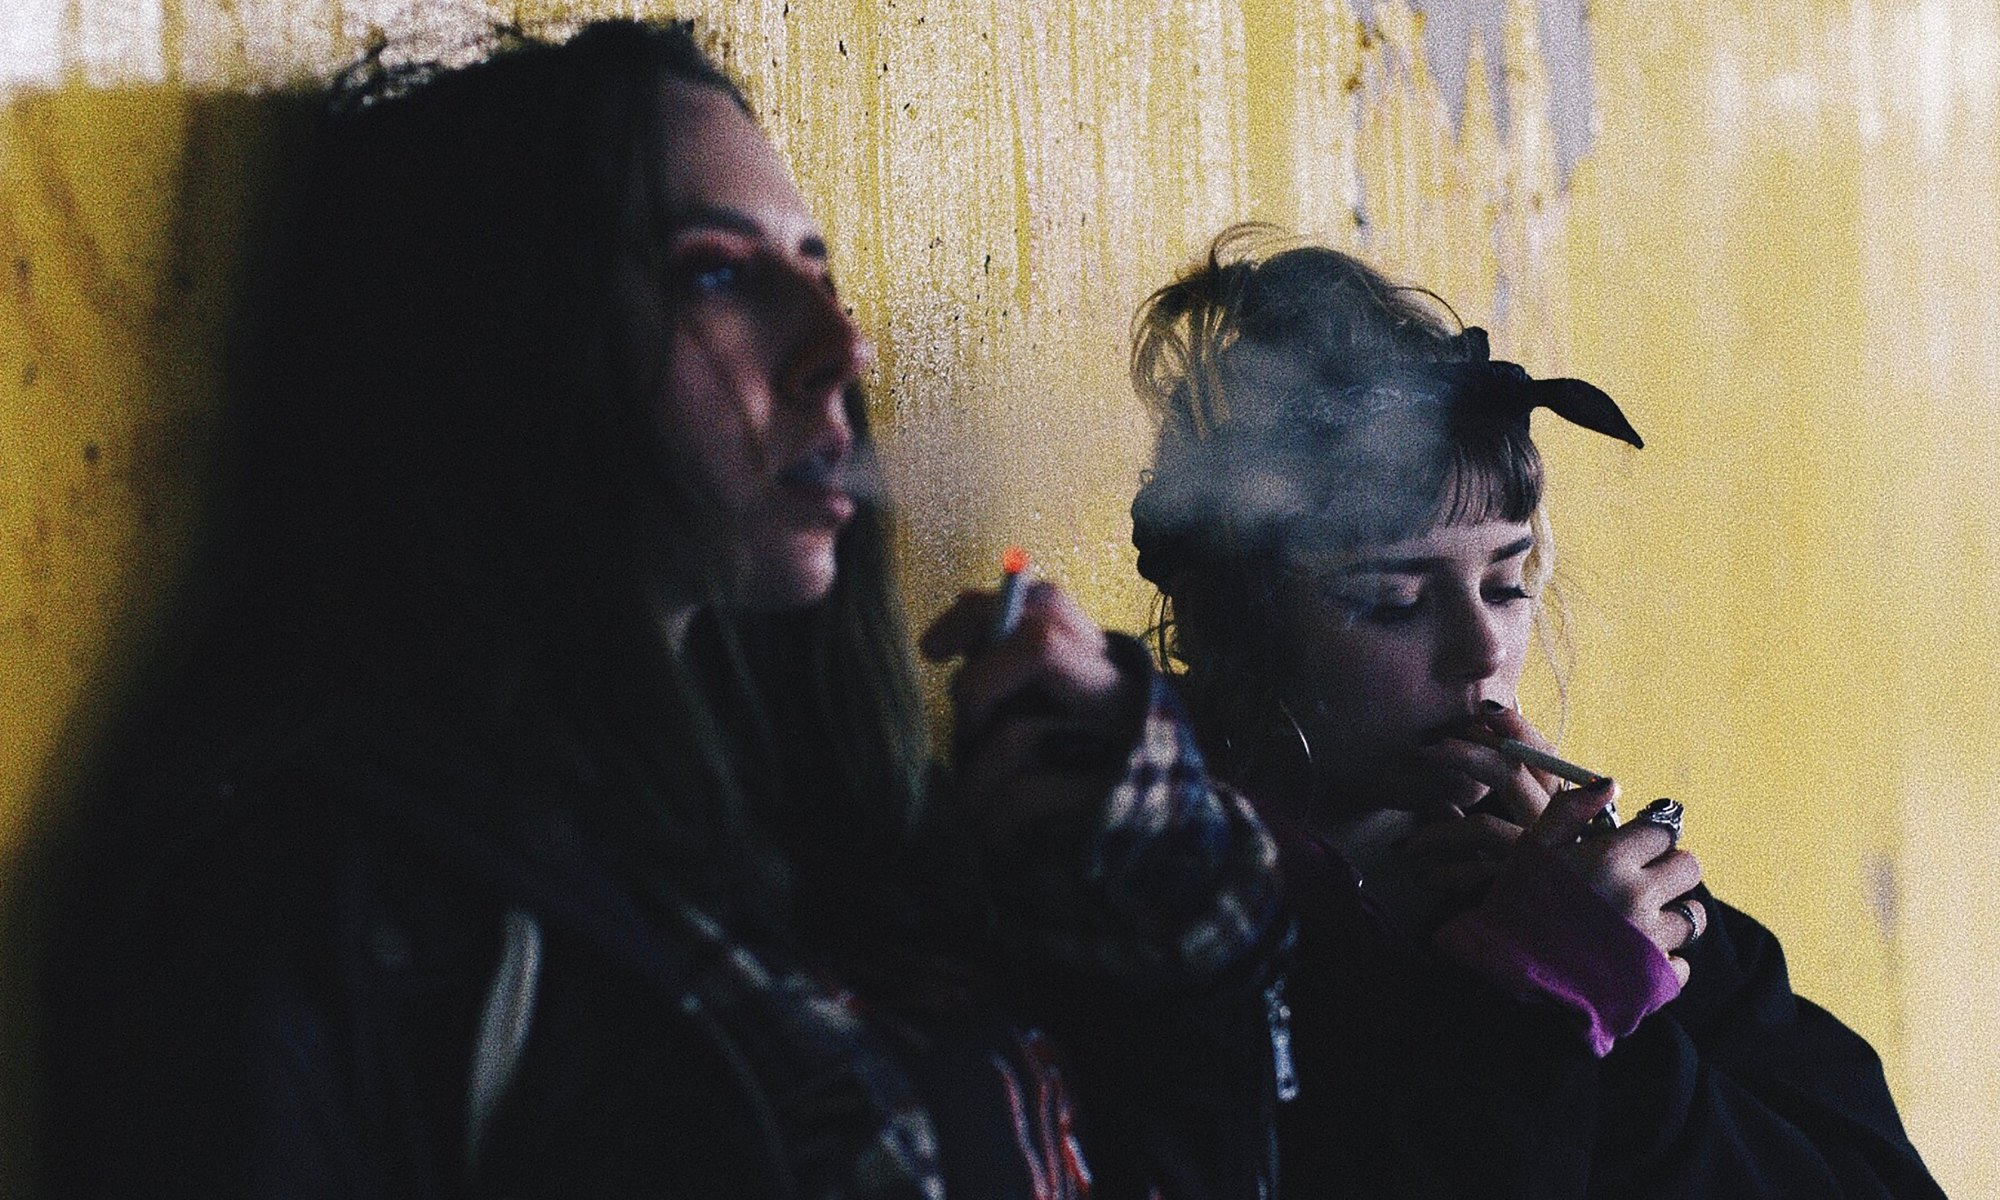 Two addicted burned out females smoking